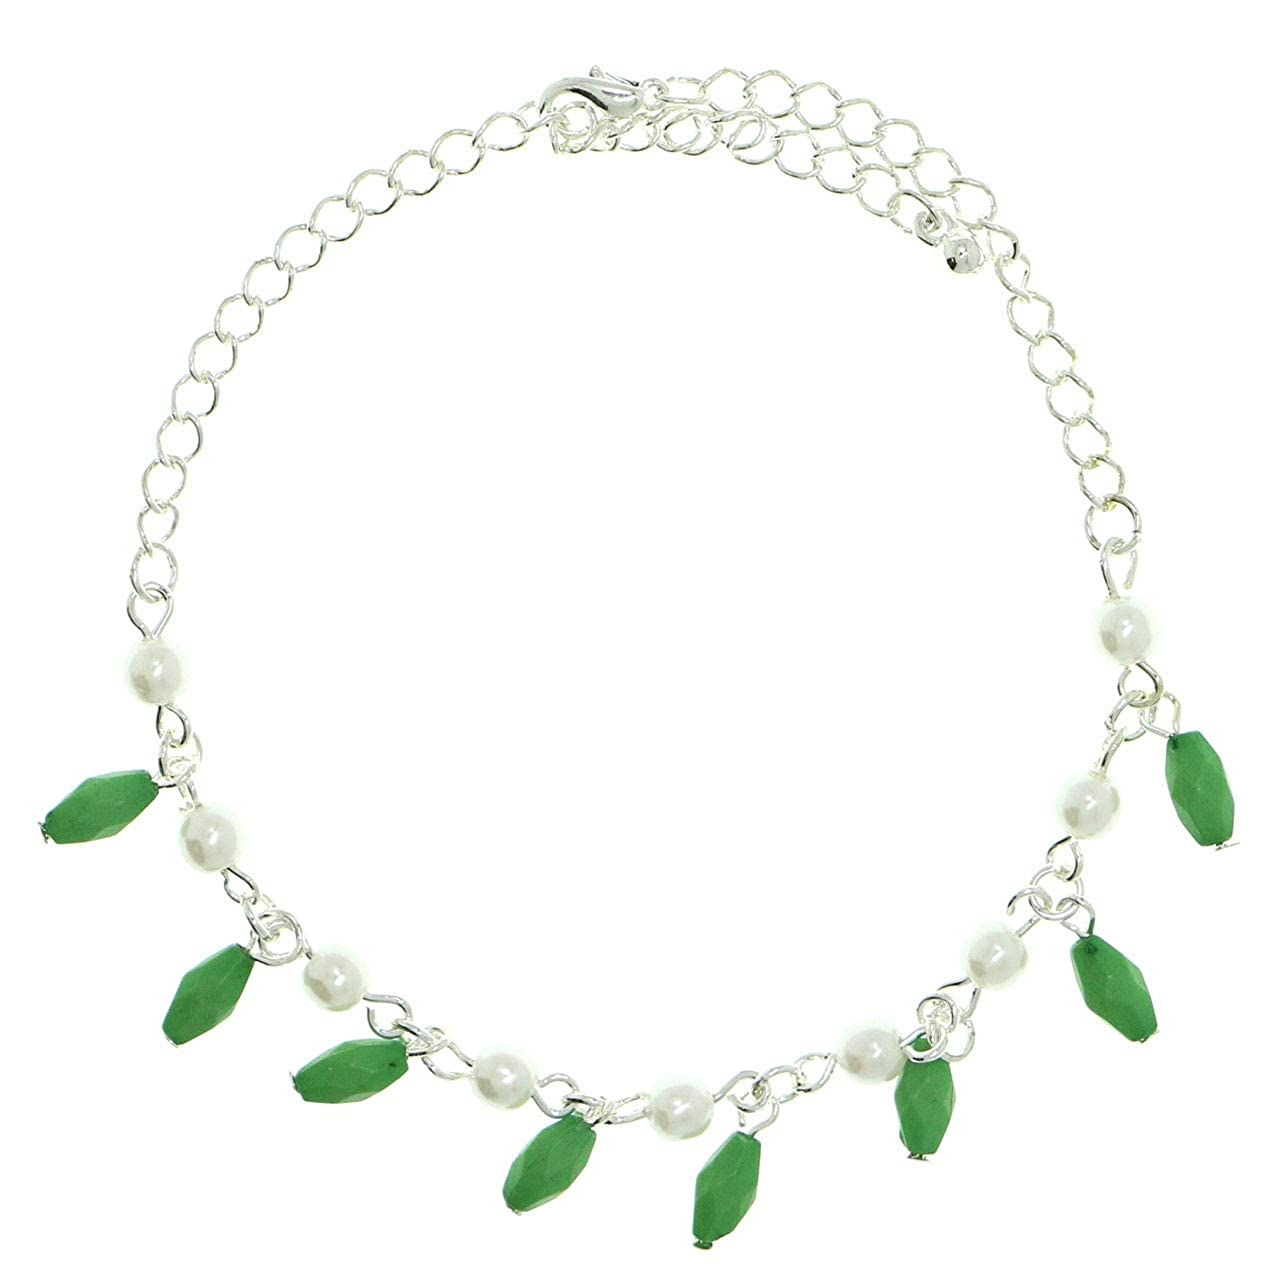 Mi Amore Silver-Tone Ankle Bracelet With Bead Accents Faceted Charms AN1263A-GREEN